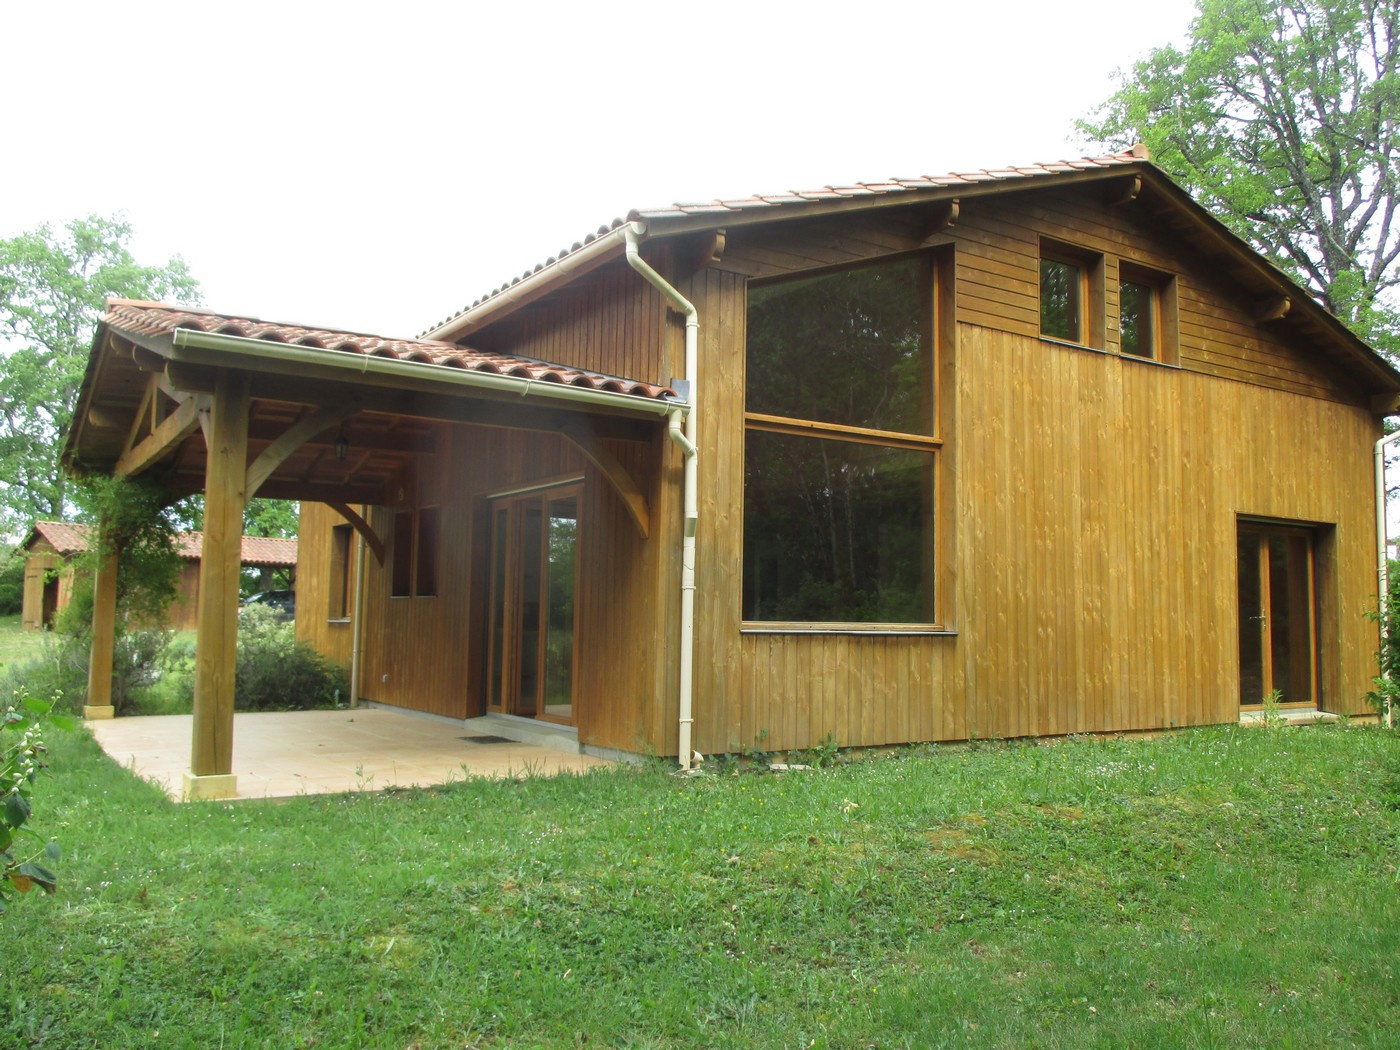 maison cologique en bois interesting constructor de casas